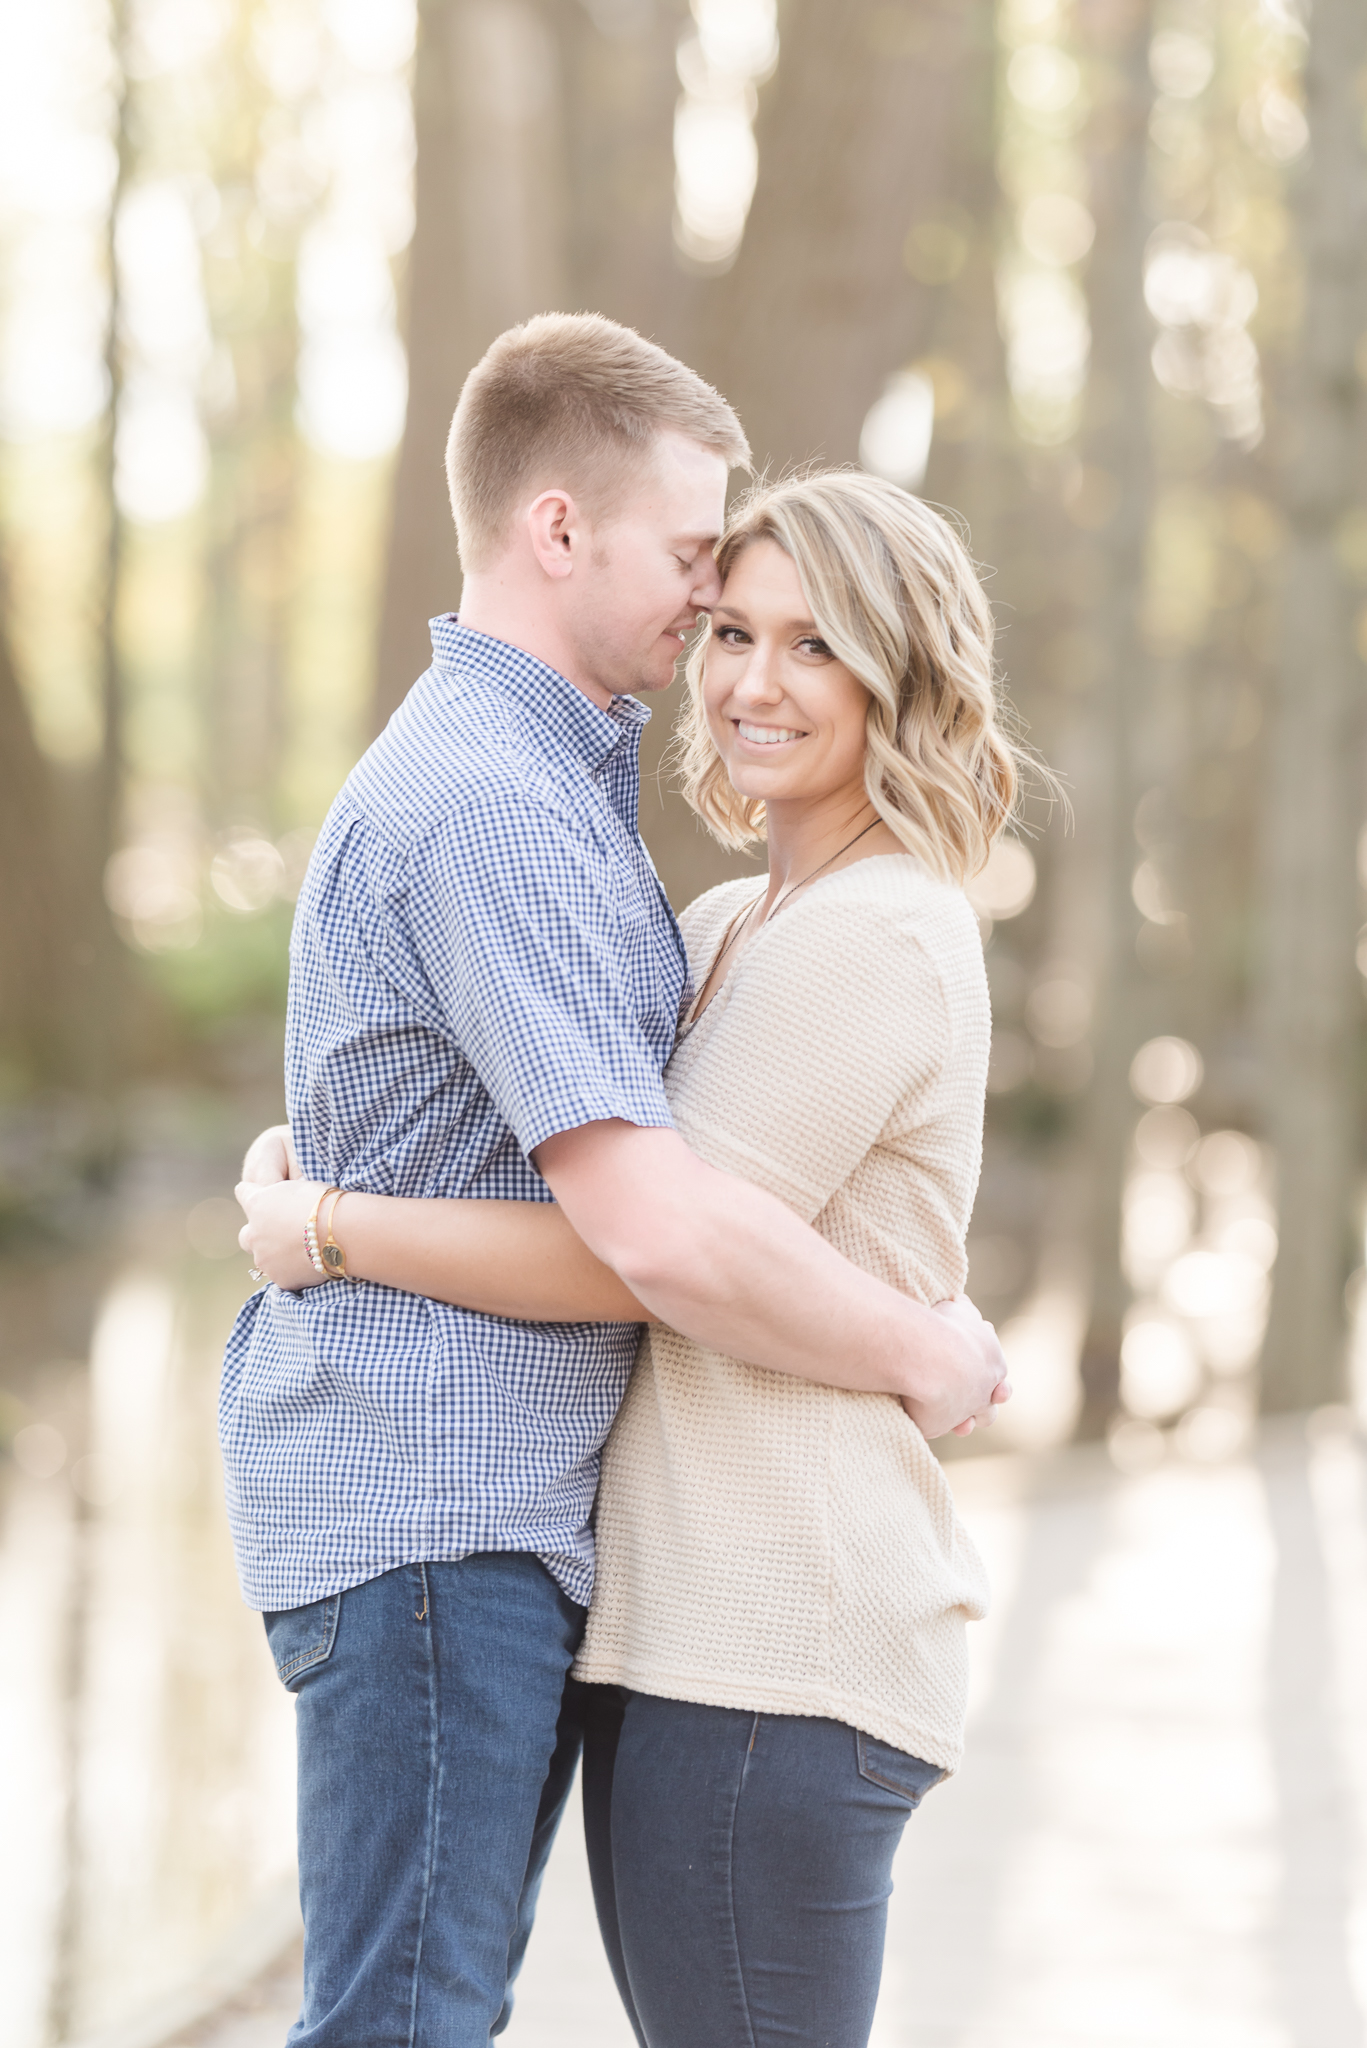 Richie Woods Nature Preserve and Mustard Seed Gardens Engagement Session Wedding Photos-11.jpg